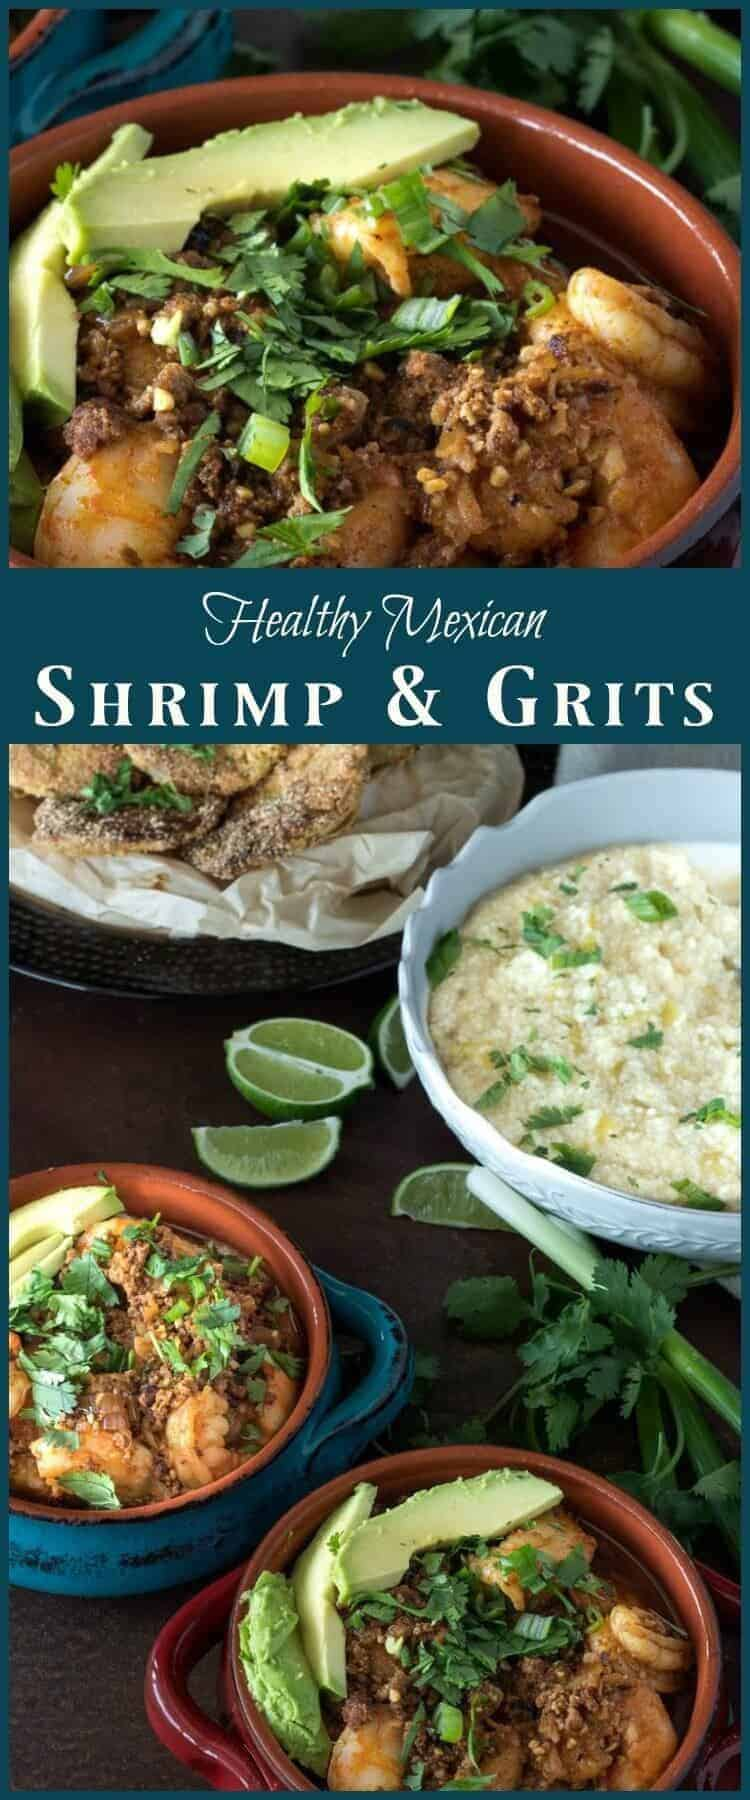 Healthy Mexican Shrimp and Grits - Bold Mexican flavors replace half n half, cream, and andouille in this healthier version of the classic shrimp and grits! healthy Mexican | gluten free recipes | Cinco de Mayo | Gulf shrimp | shrimp recipes